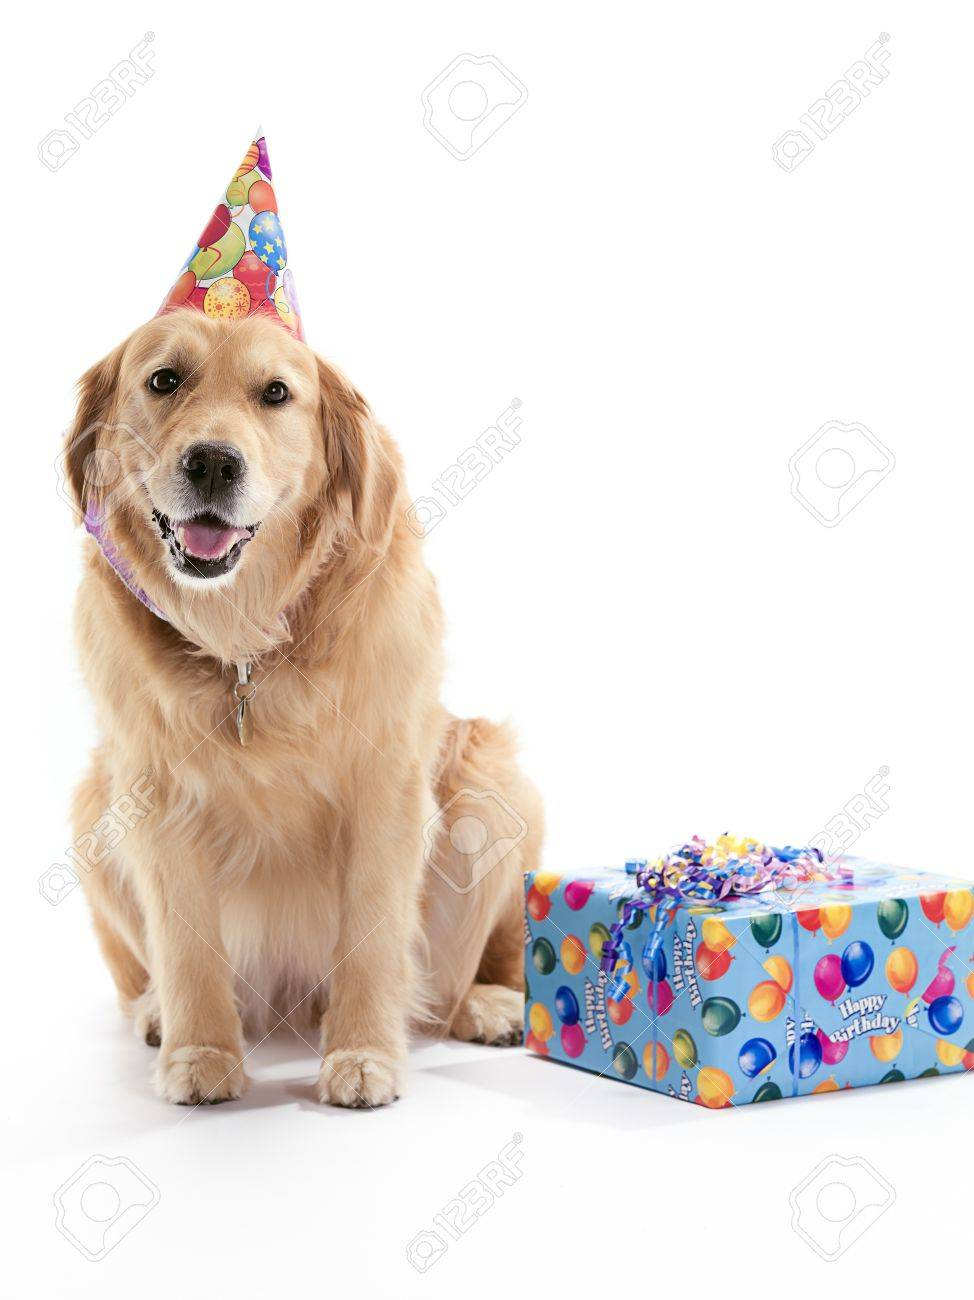 A Golden Retriever Dog Wearing A Birthday Hat On A White Background